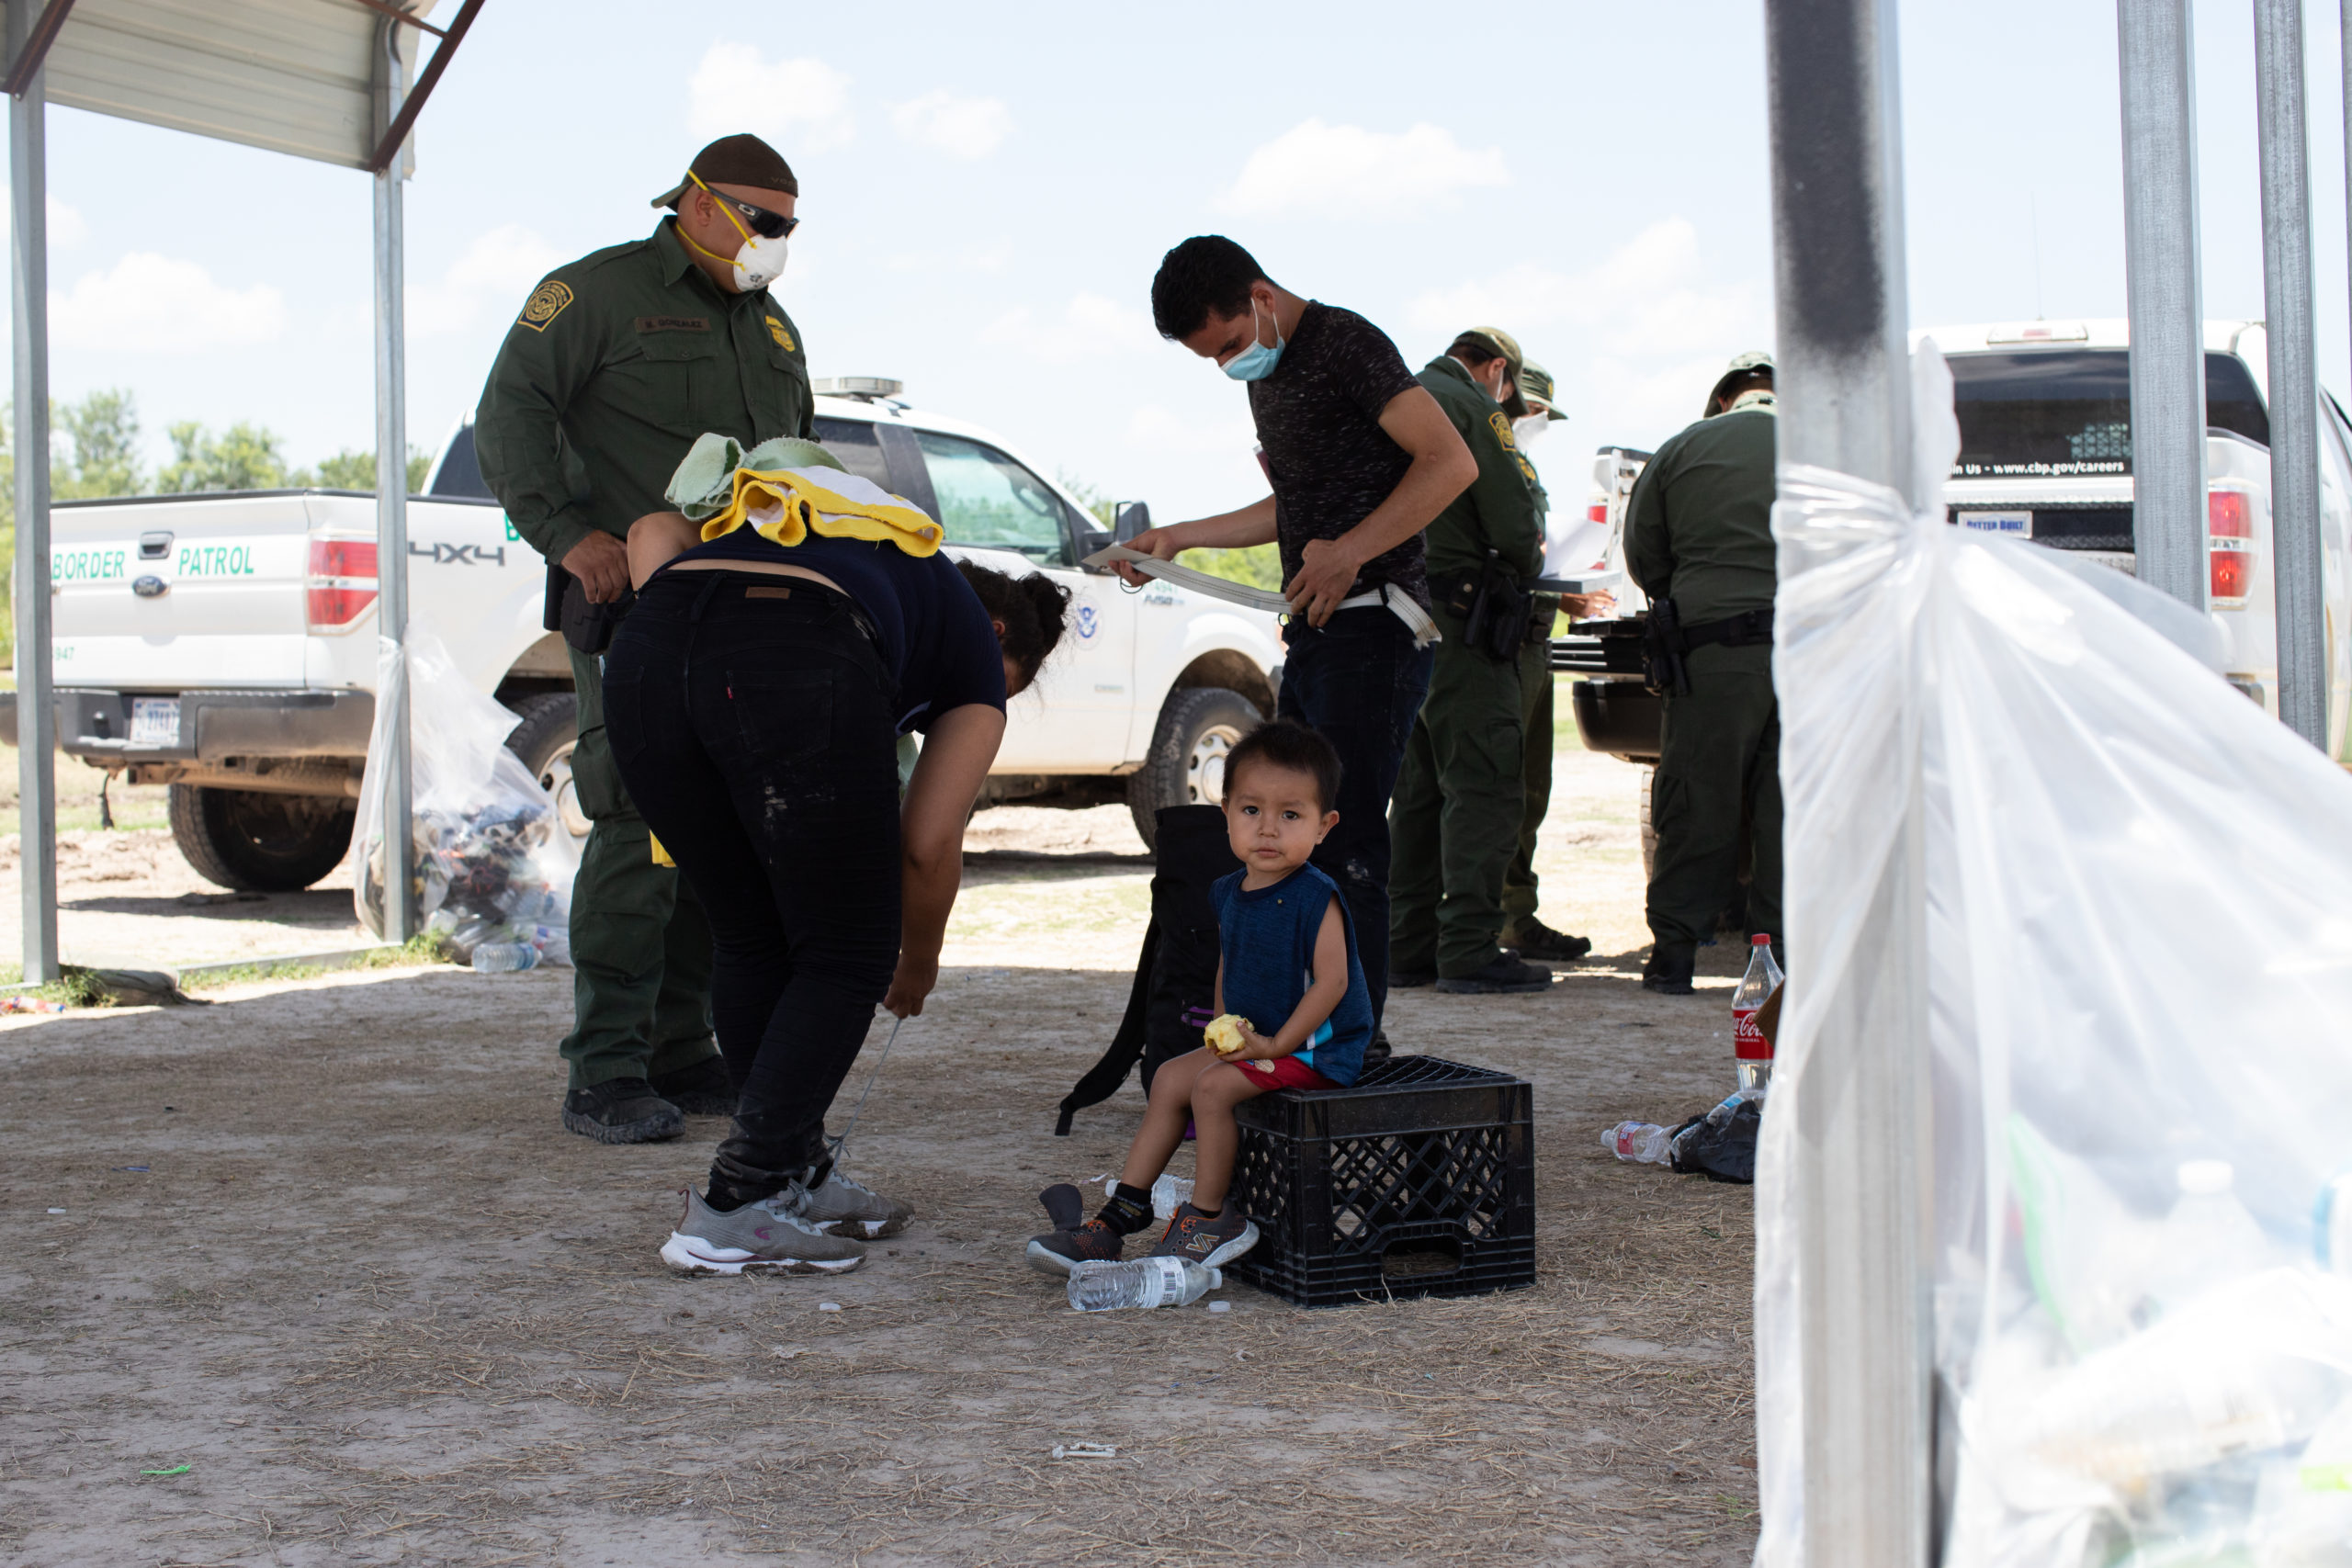 A migrant boy and his mother go through routine field processing after illegally entering the U.S. near La Joya, Texas, on August 7, 2021. (Kaylee Greenlee - Daily Caller News Foundation)